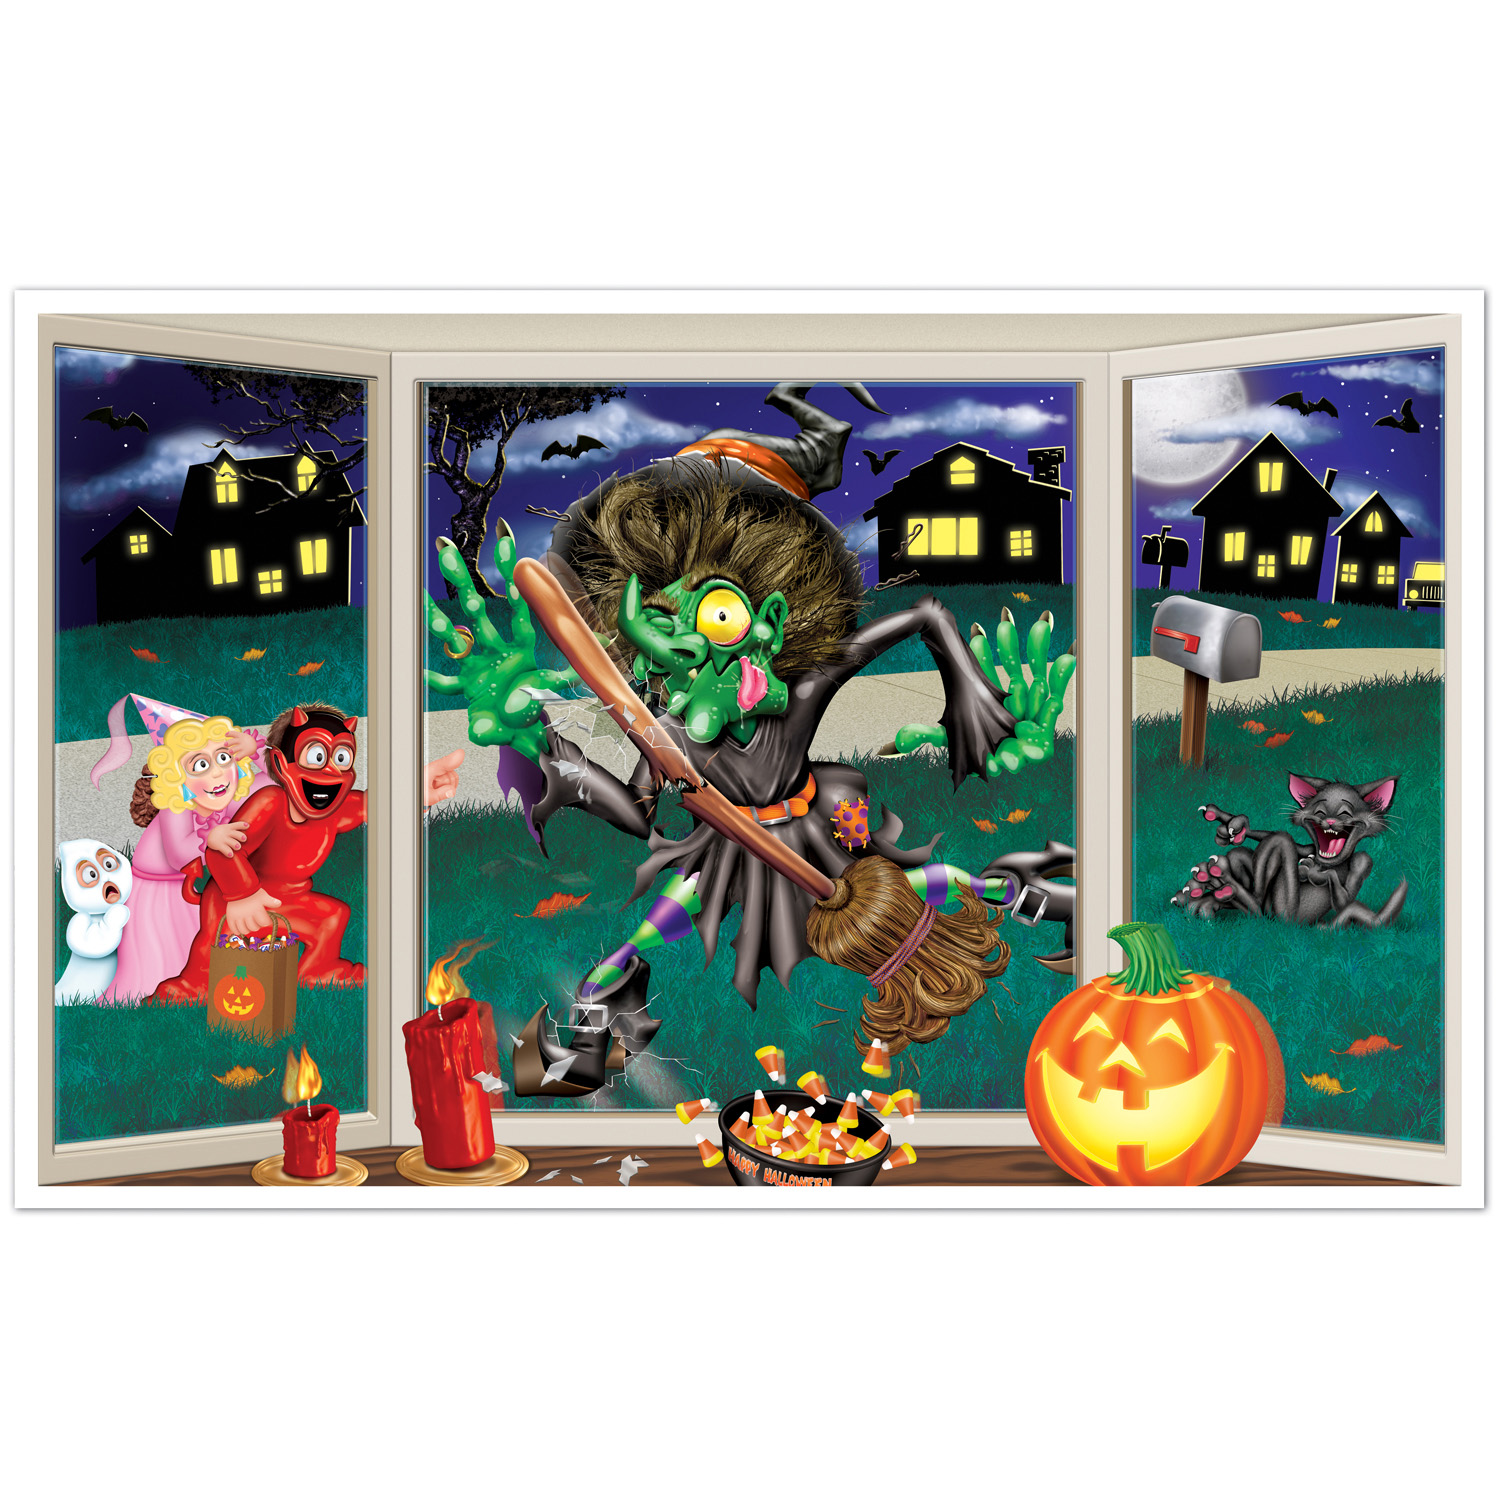 D coration murale sorci re cras e halloween d coration for Decoration murale halloween